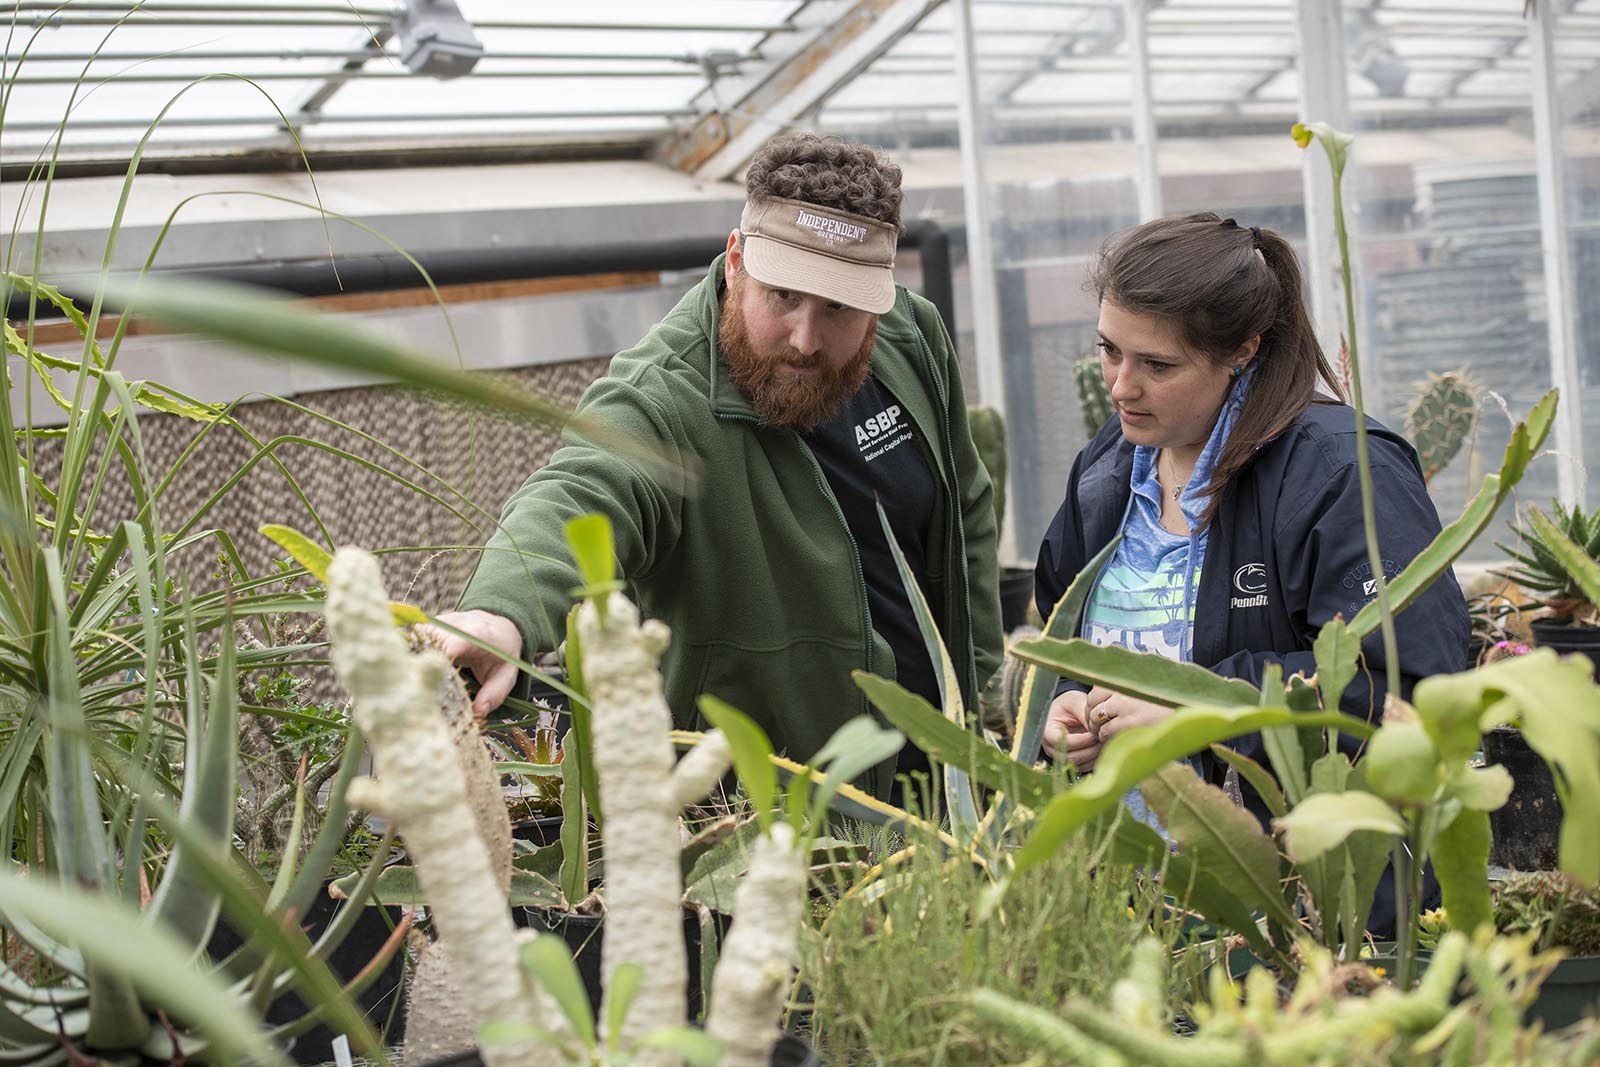 Penn State horticulture experts examining potted plants.